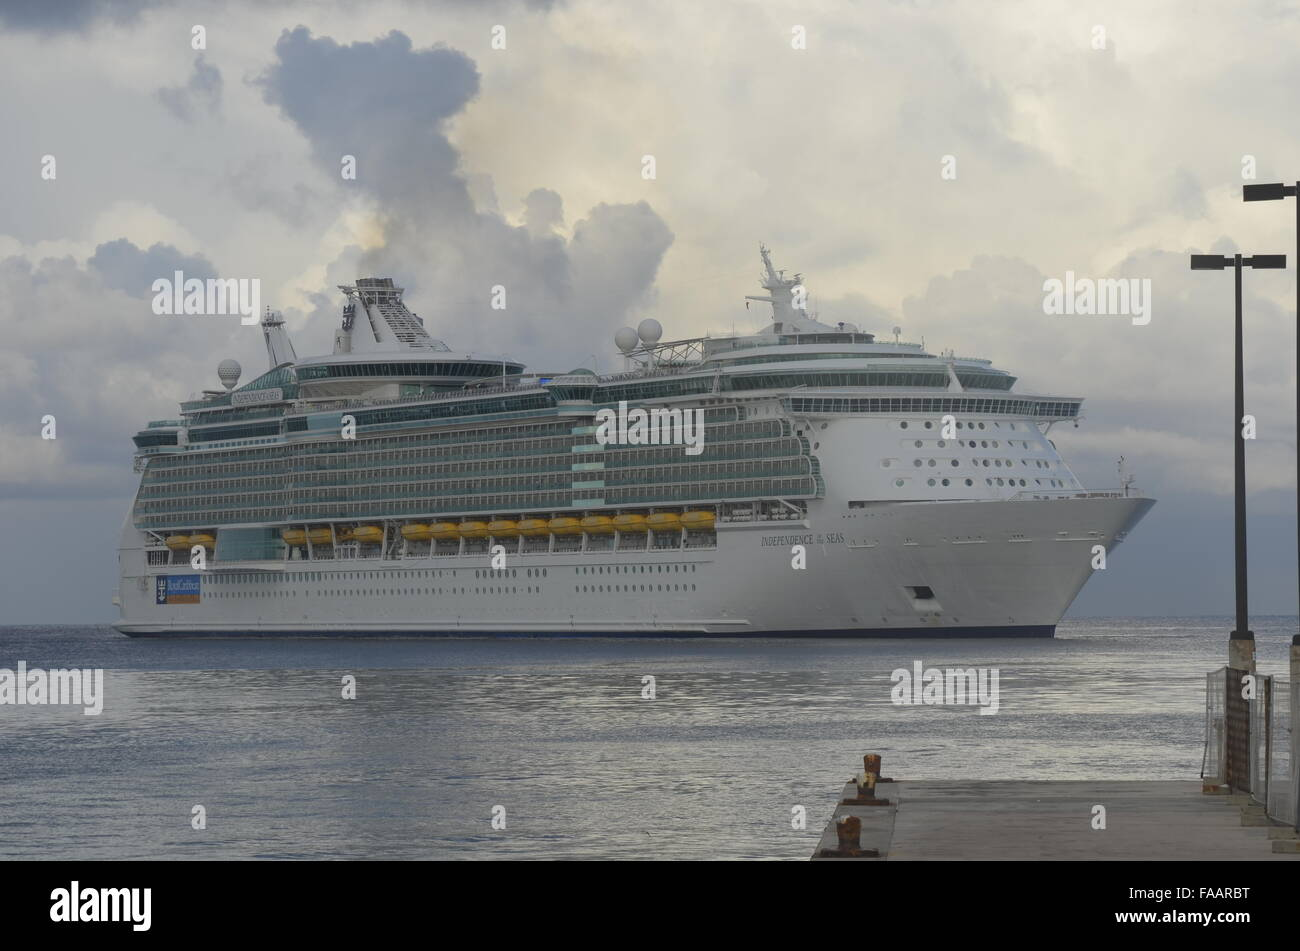 Royal Caribbean Independence of the Seas. - Stock Image